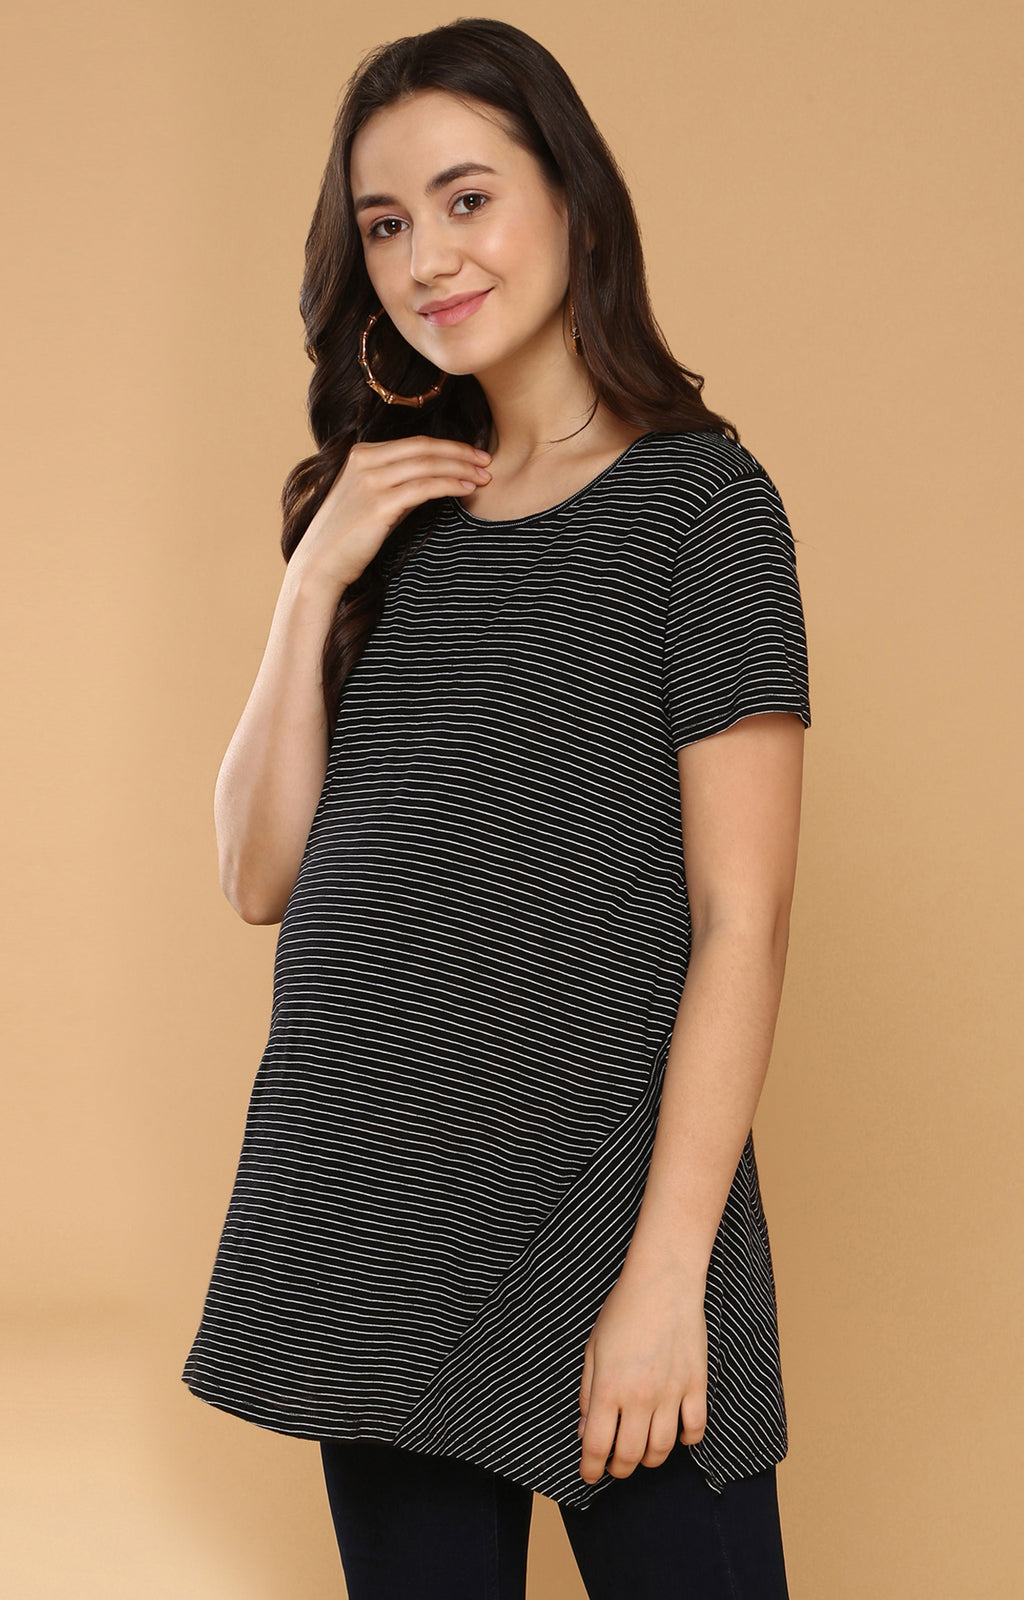 Stripe Play Top - momsoon maternity fashion wear